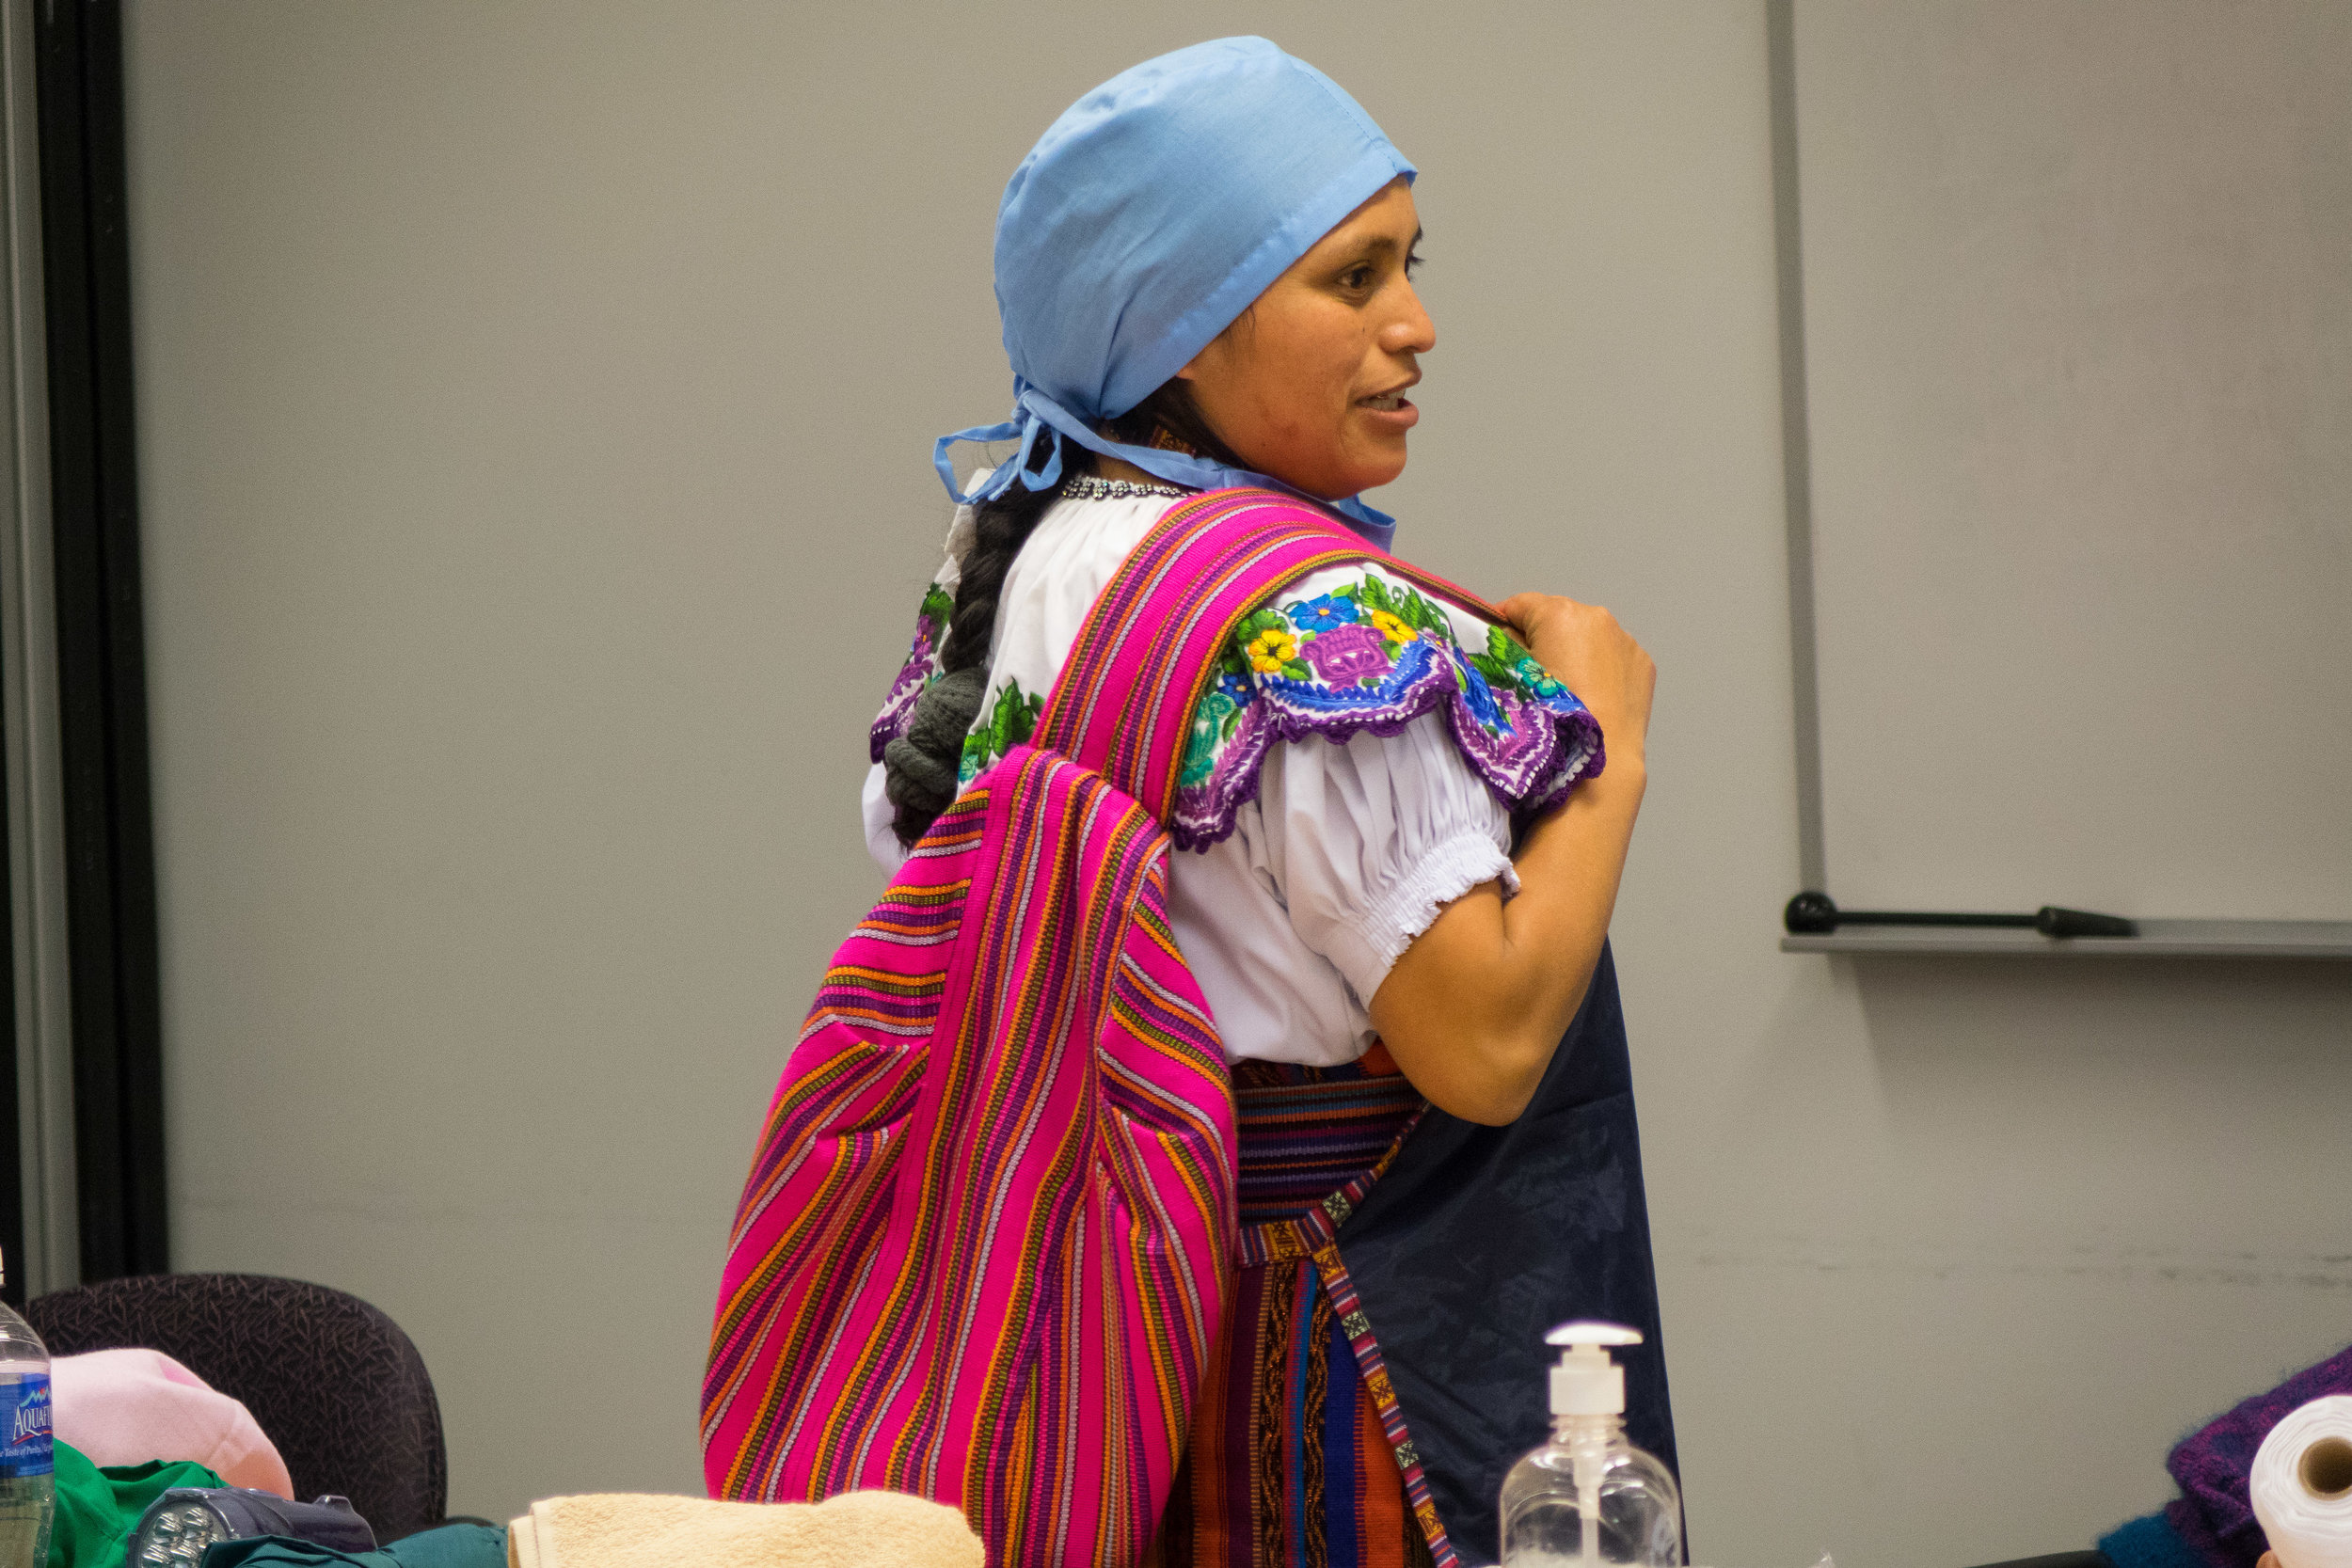 Valenzuela, a traditional Indigenous Maya K'iche'midwife, shared her story and experiences with Canadians during the MNCH project's most recent Knowledge Exchange across Ontario and Québec.